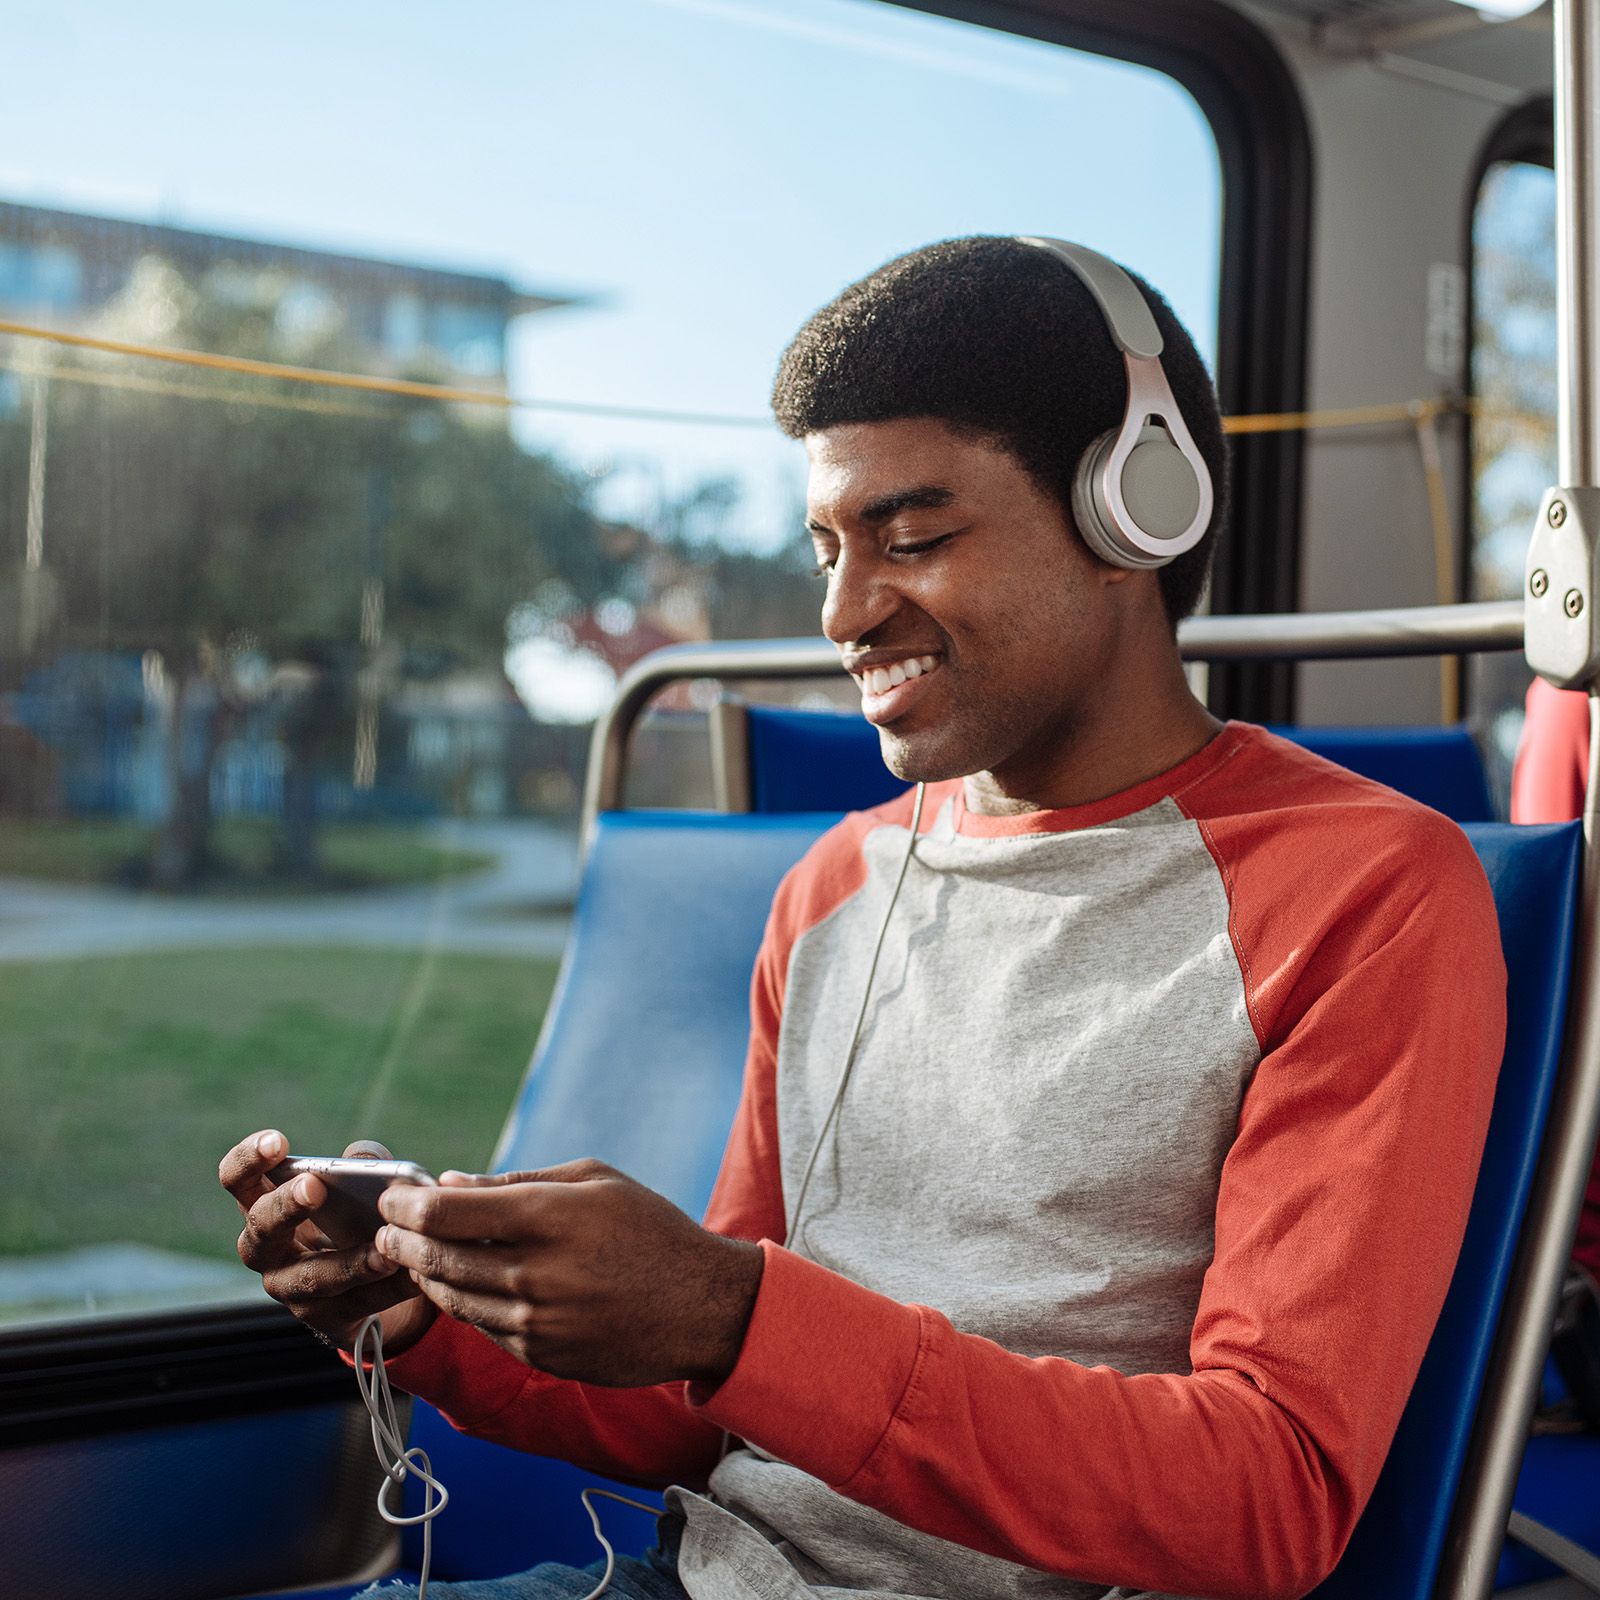 A rider smiles on a VIA bus in San Antonio, TX by commercial photographer Josh Huskin